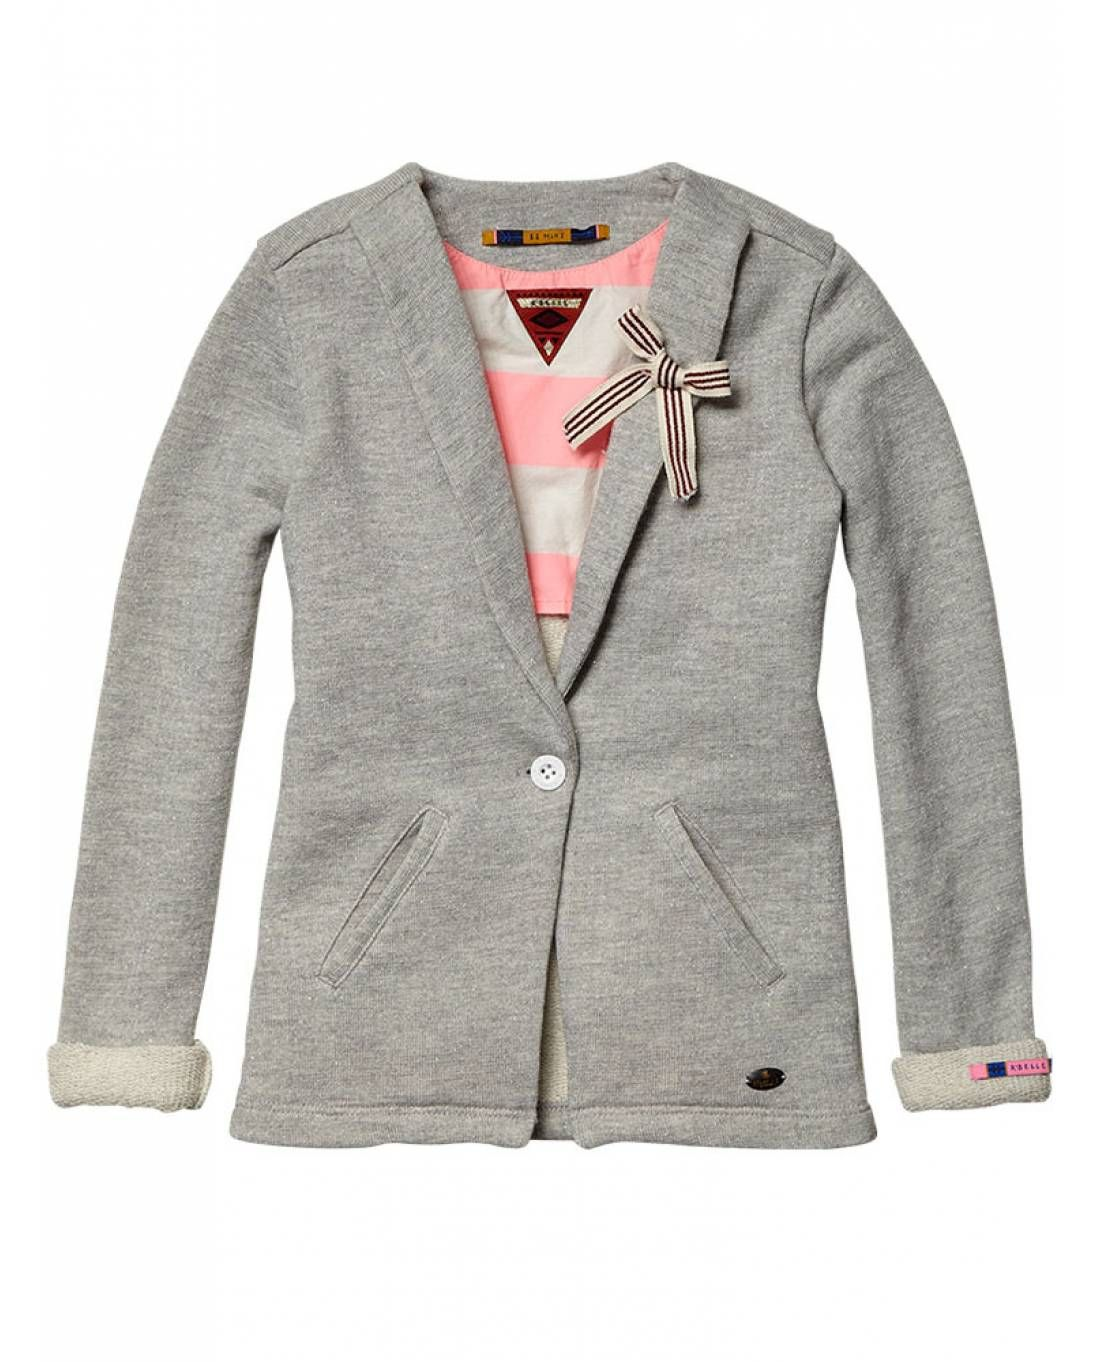 4f505ea04ade1 Lurex sweat blazer with bow pin - Sweaters - Official Scotch   Soda Online  Fashion   Apparel Shops